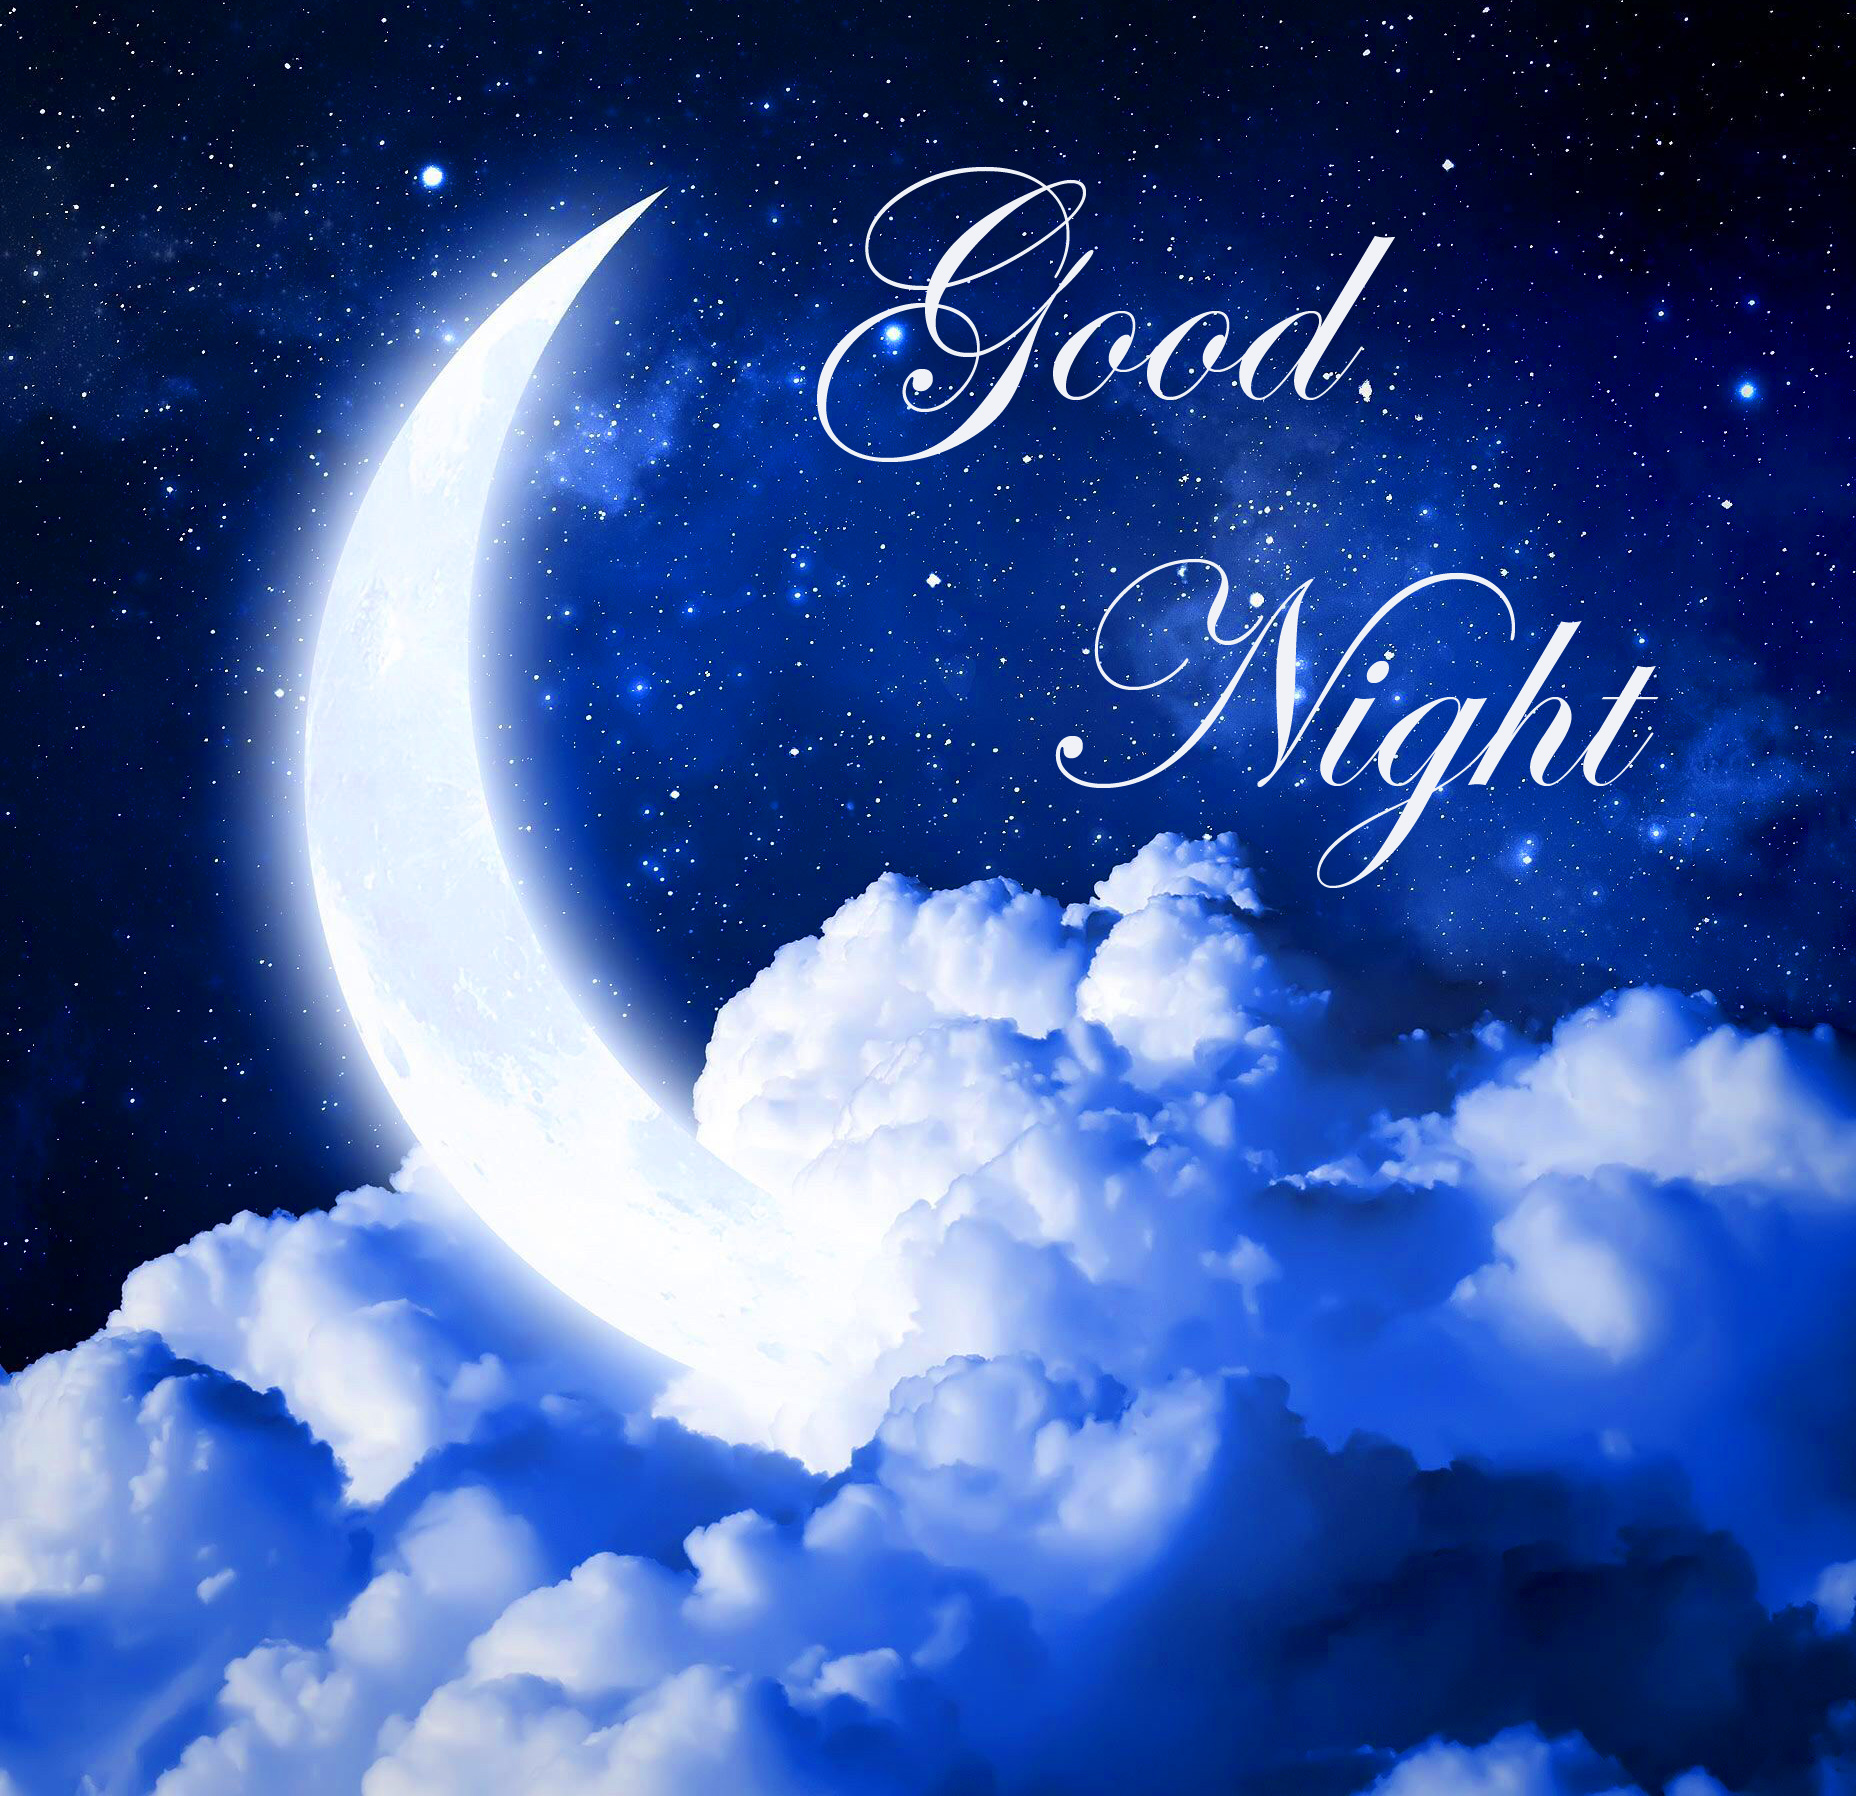 Moon on Clouds with Best Good Night Wish